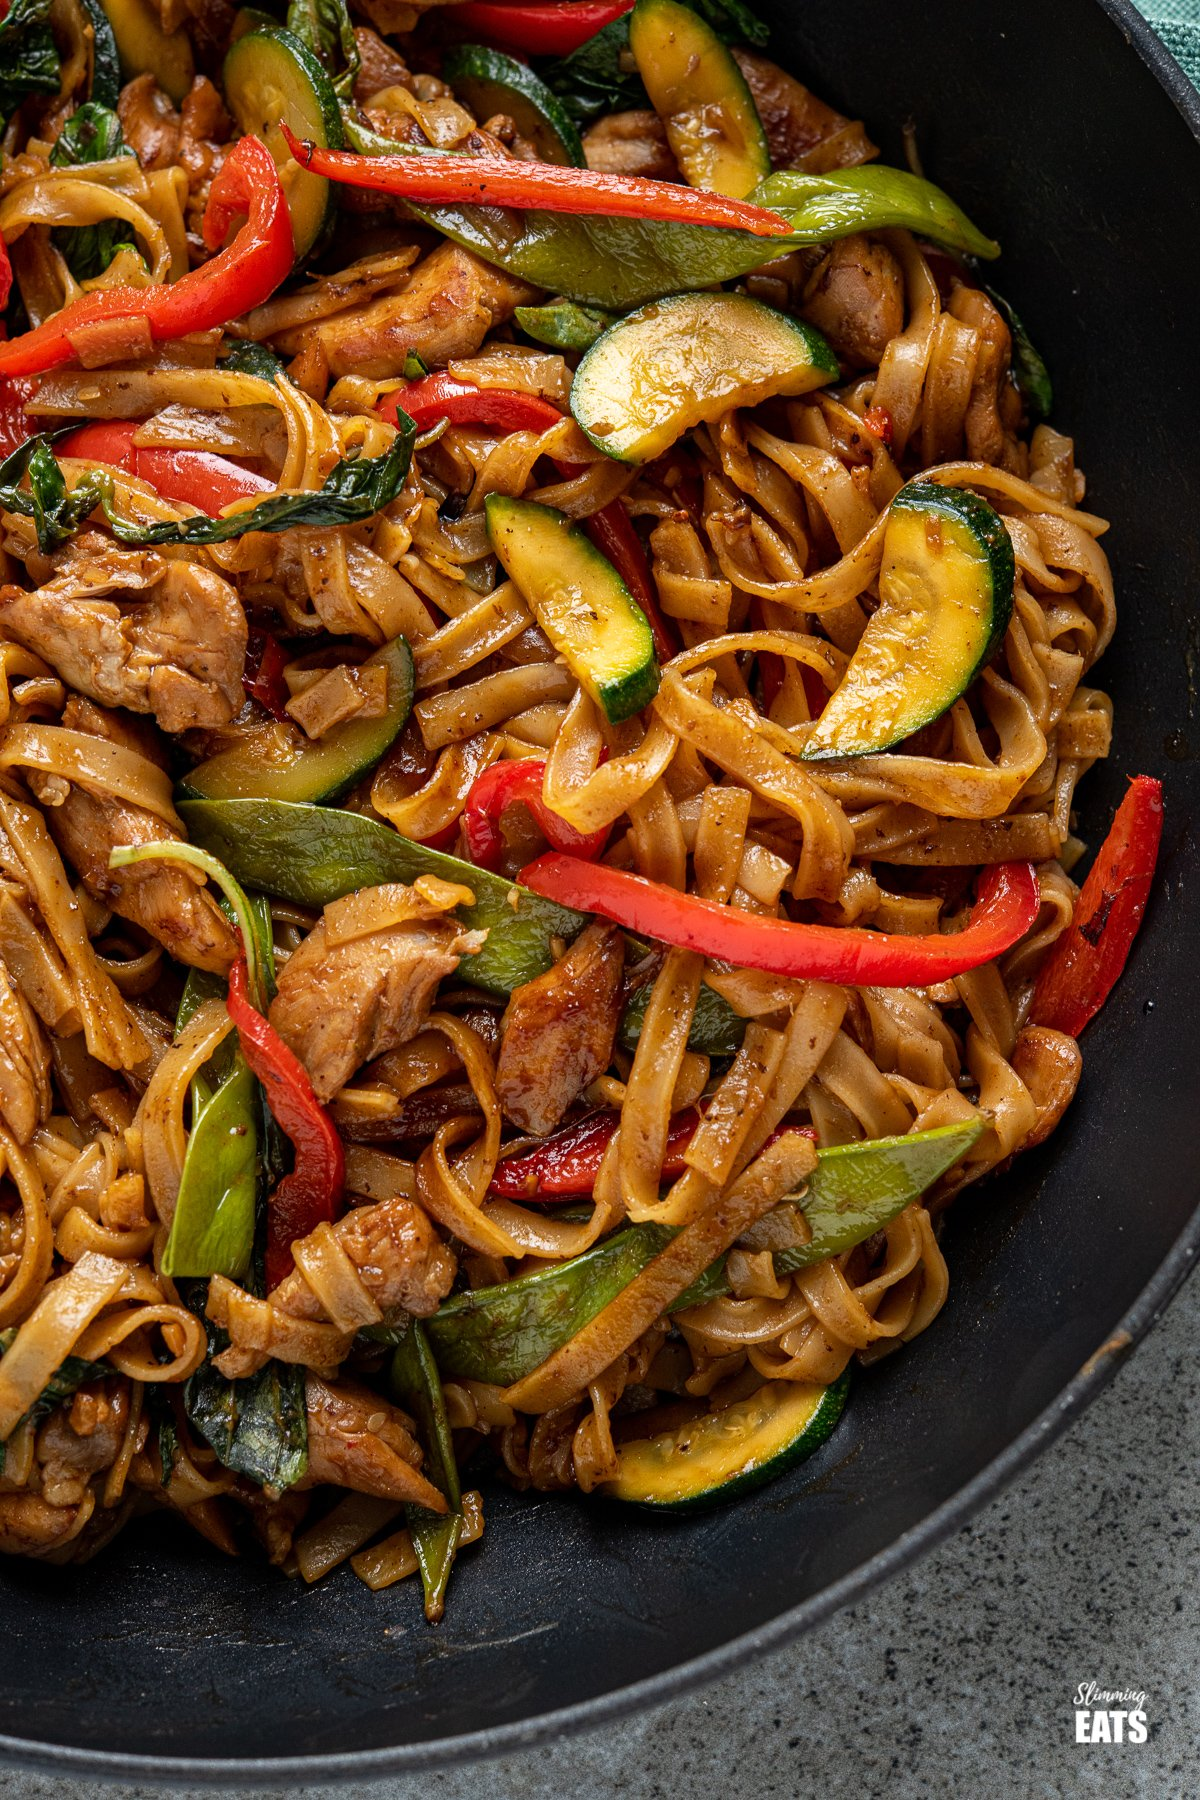 close up of drunken noodles - chicken, vegetables and rice noodles in a spicy flavoursome sauce in a black pan